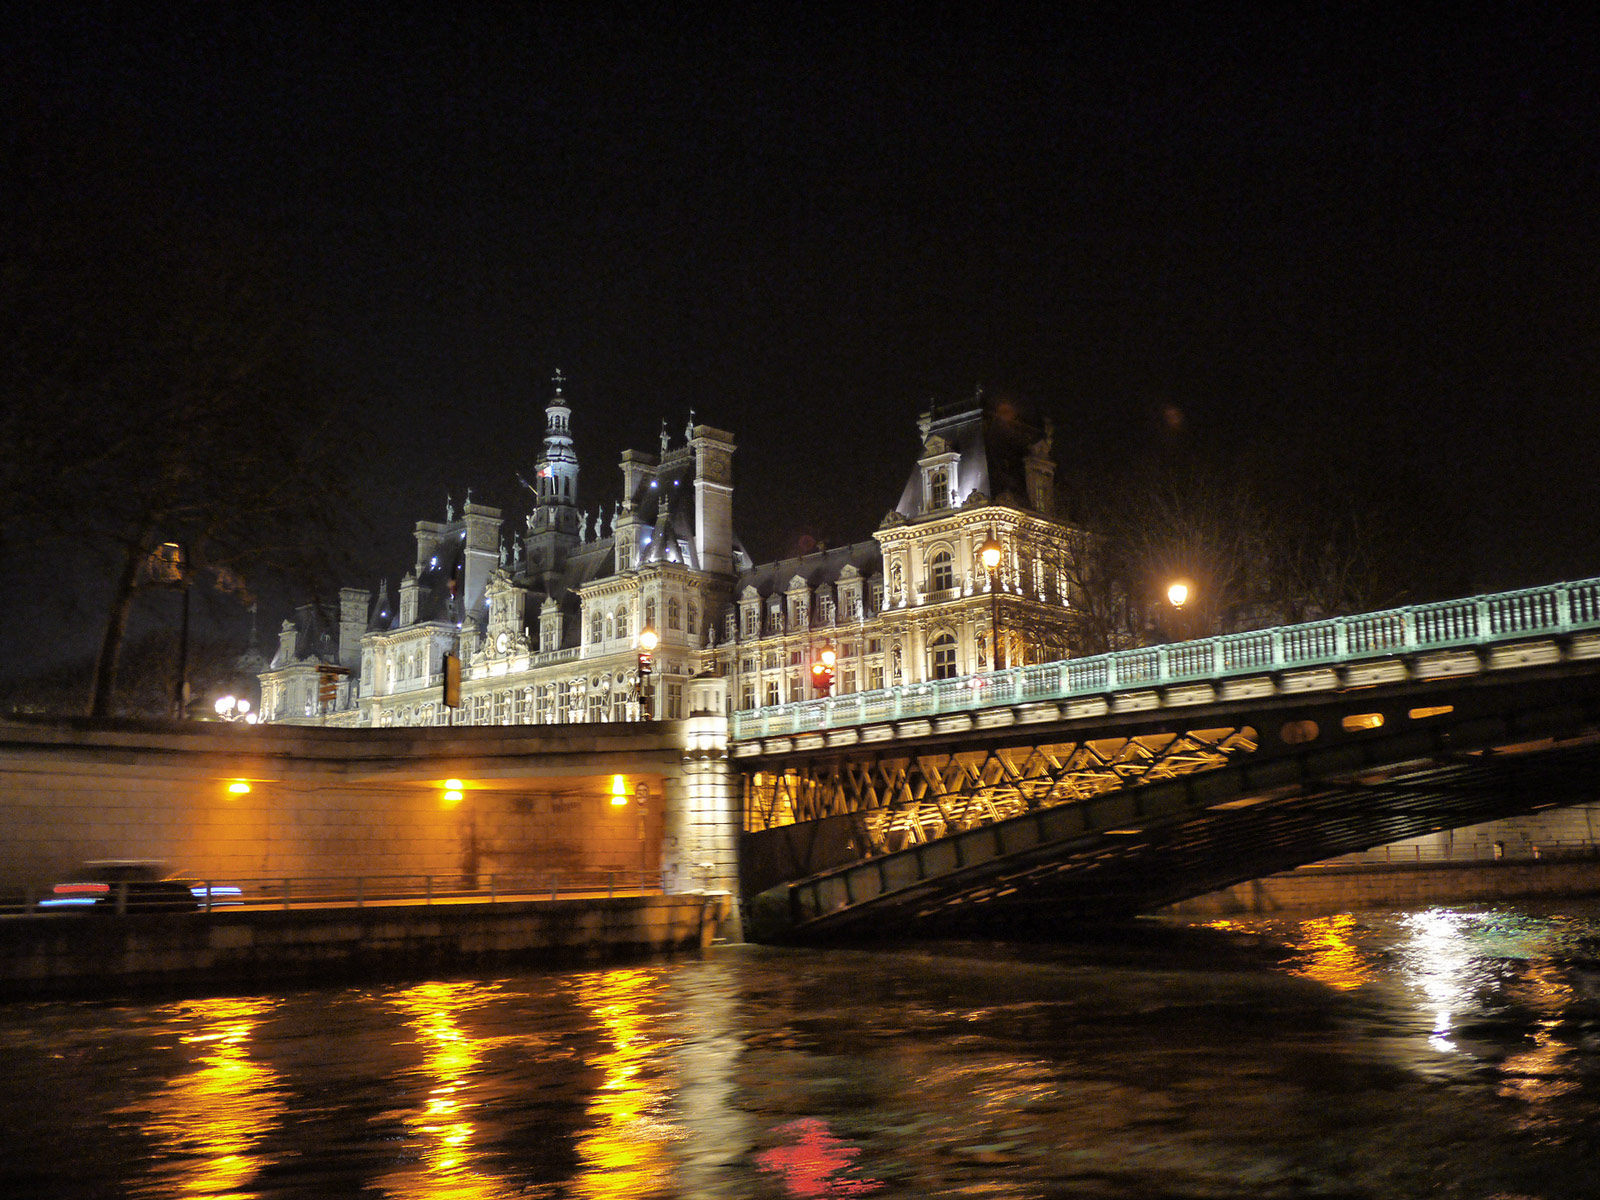 Enjoying a Night Cruise on the River Seine - Paris, France